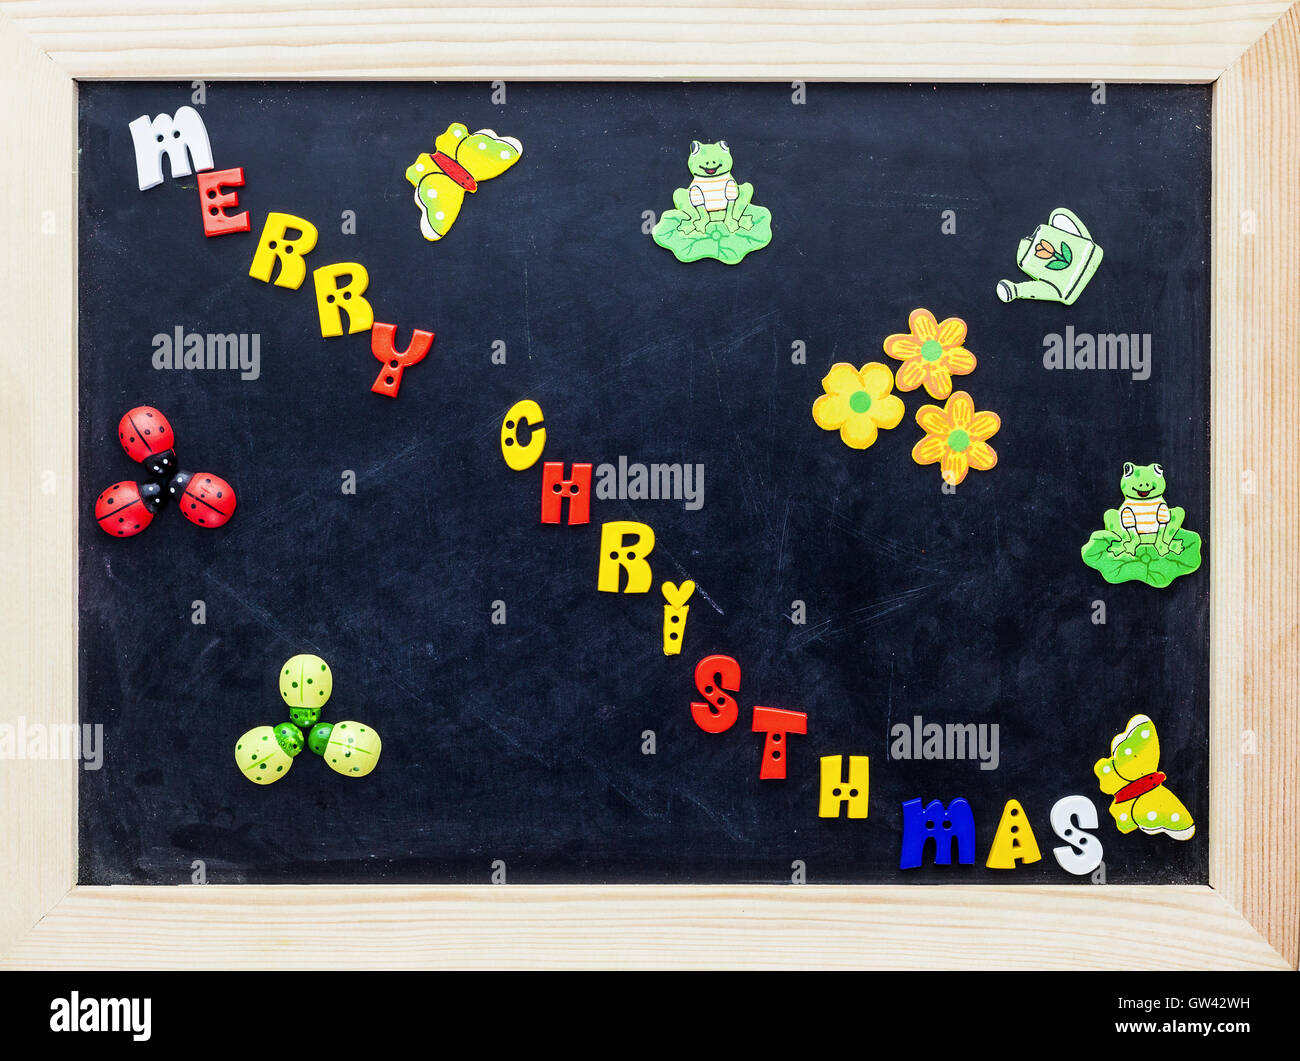 color merry christmas words on black board stock image - How Do You Say Merry Christmas In Greek